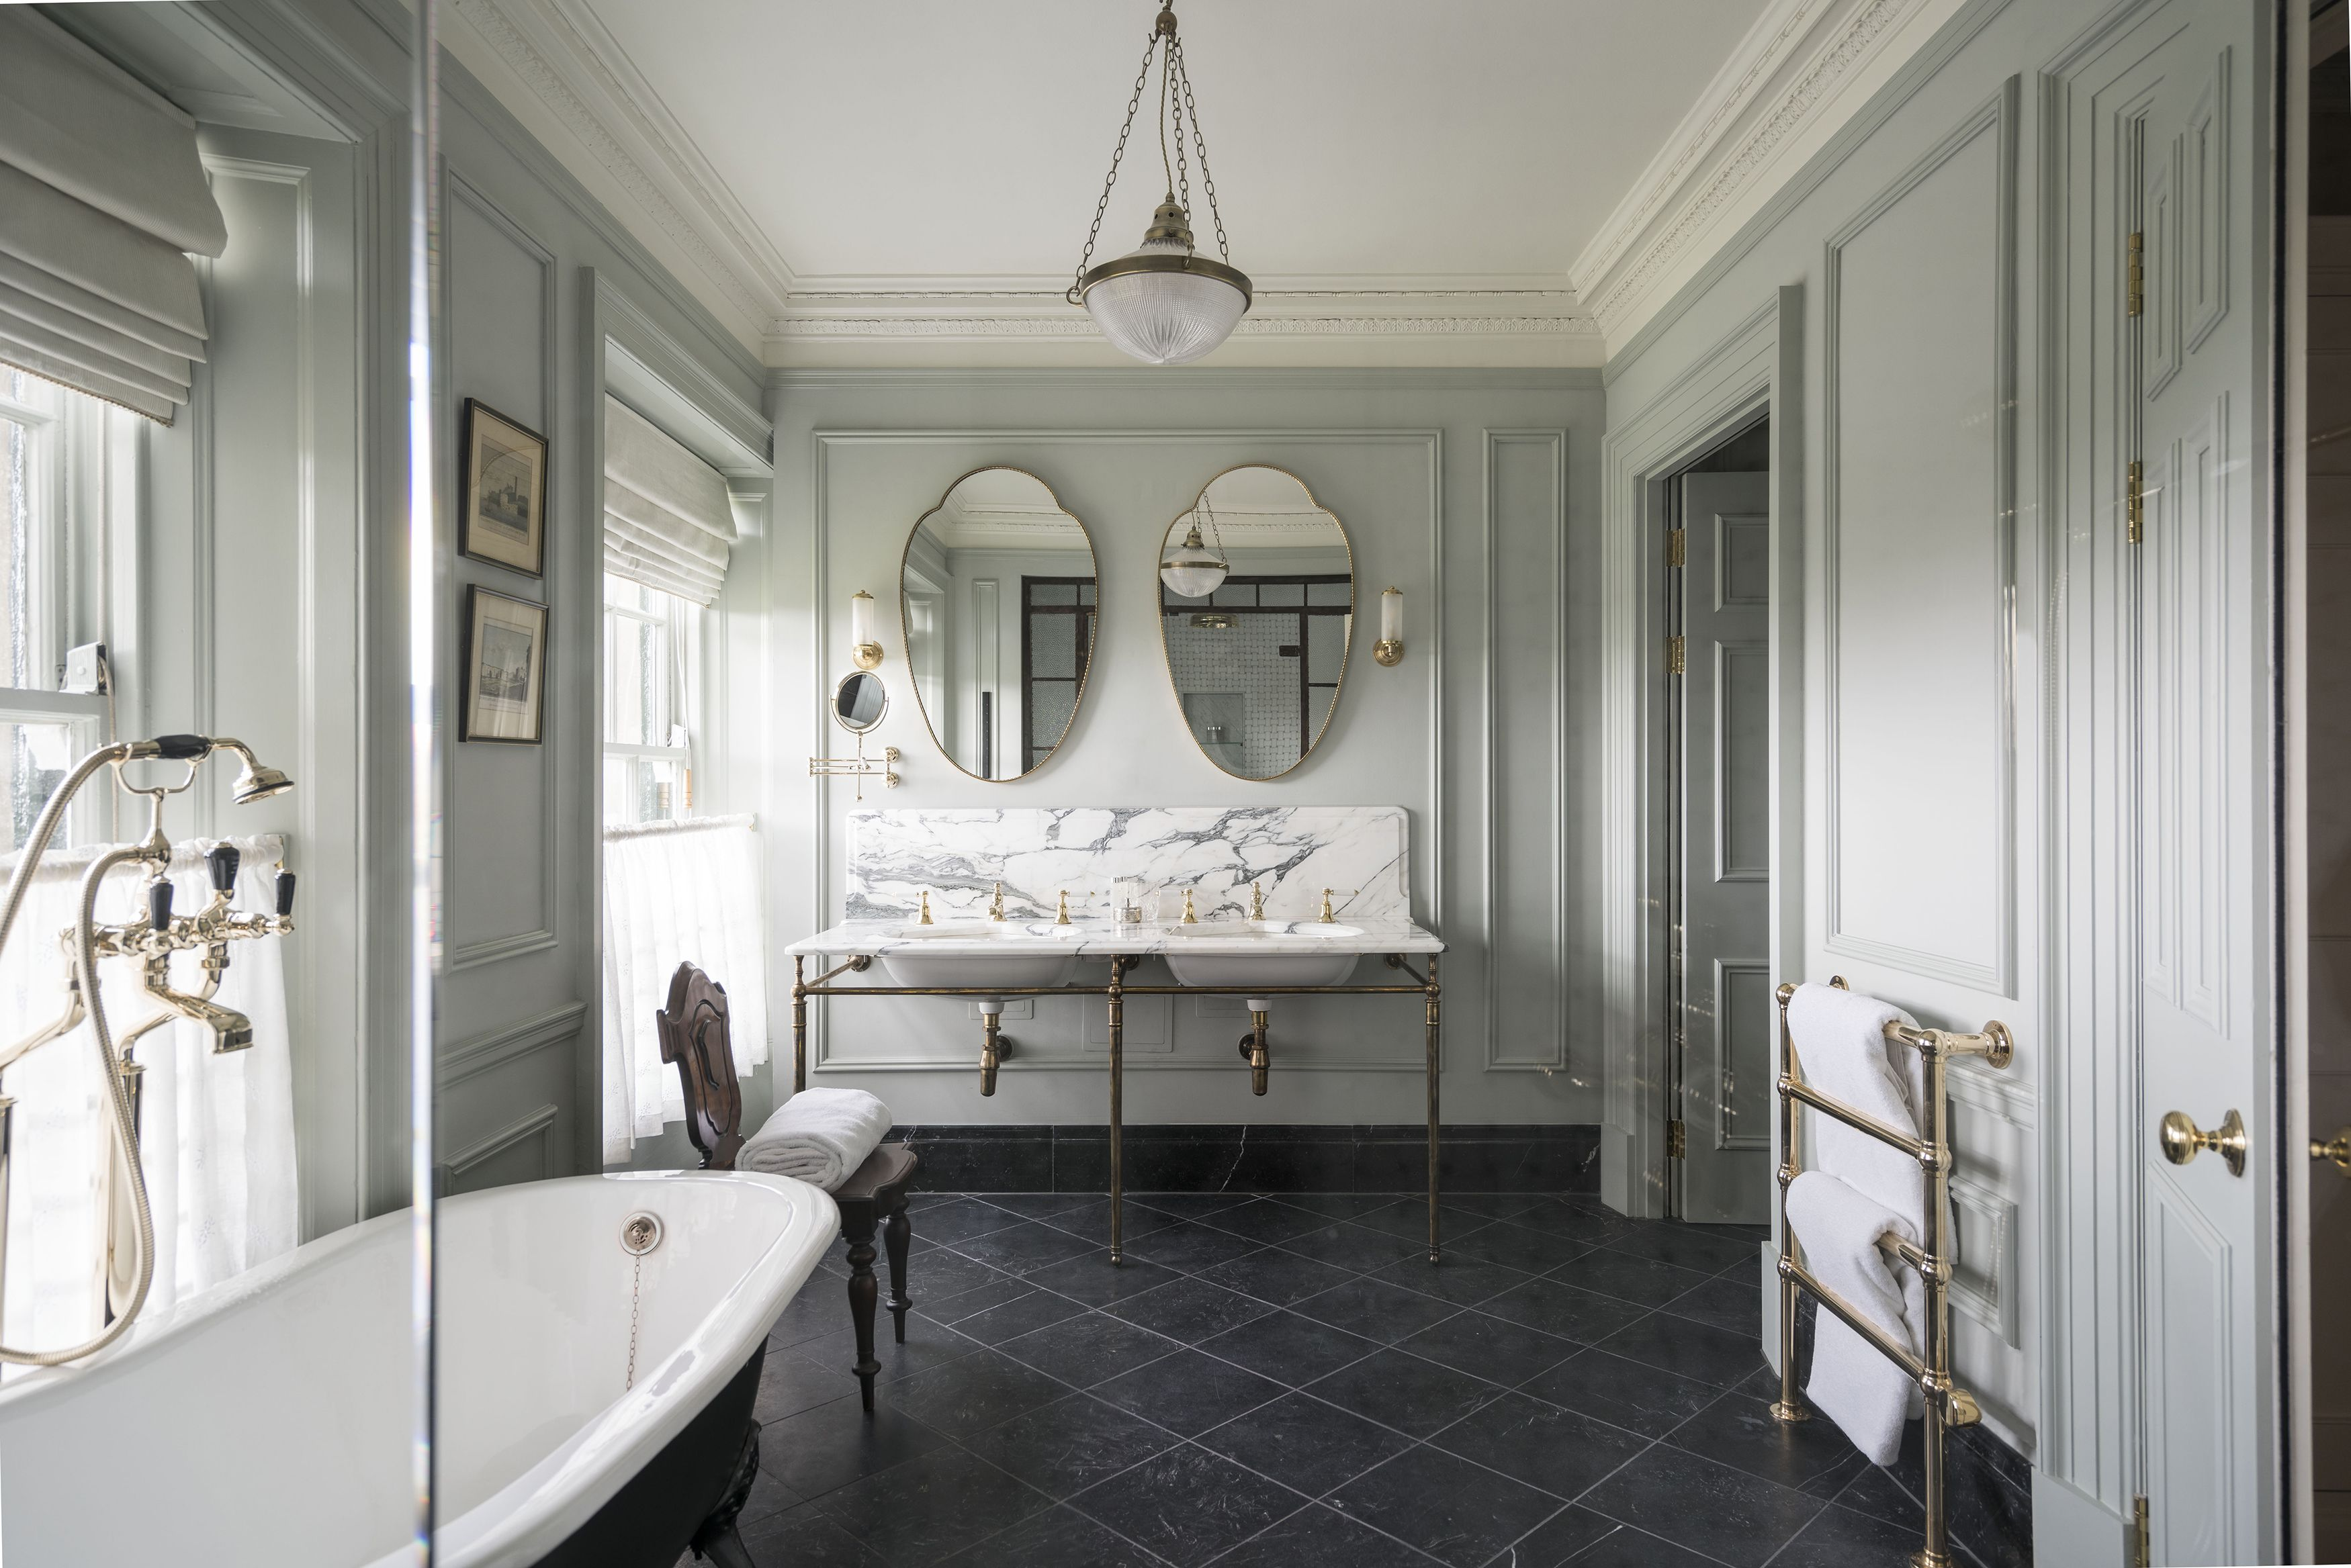 Luxury Bathroom At Gleneagles By Ennismore Design Studio